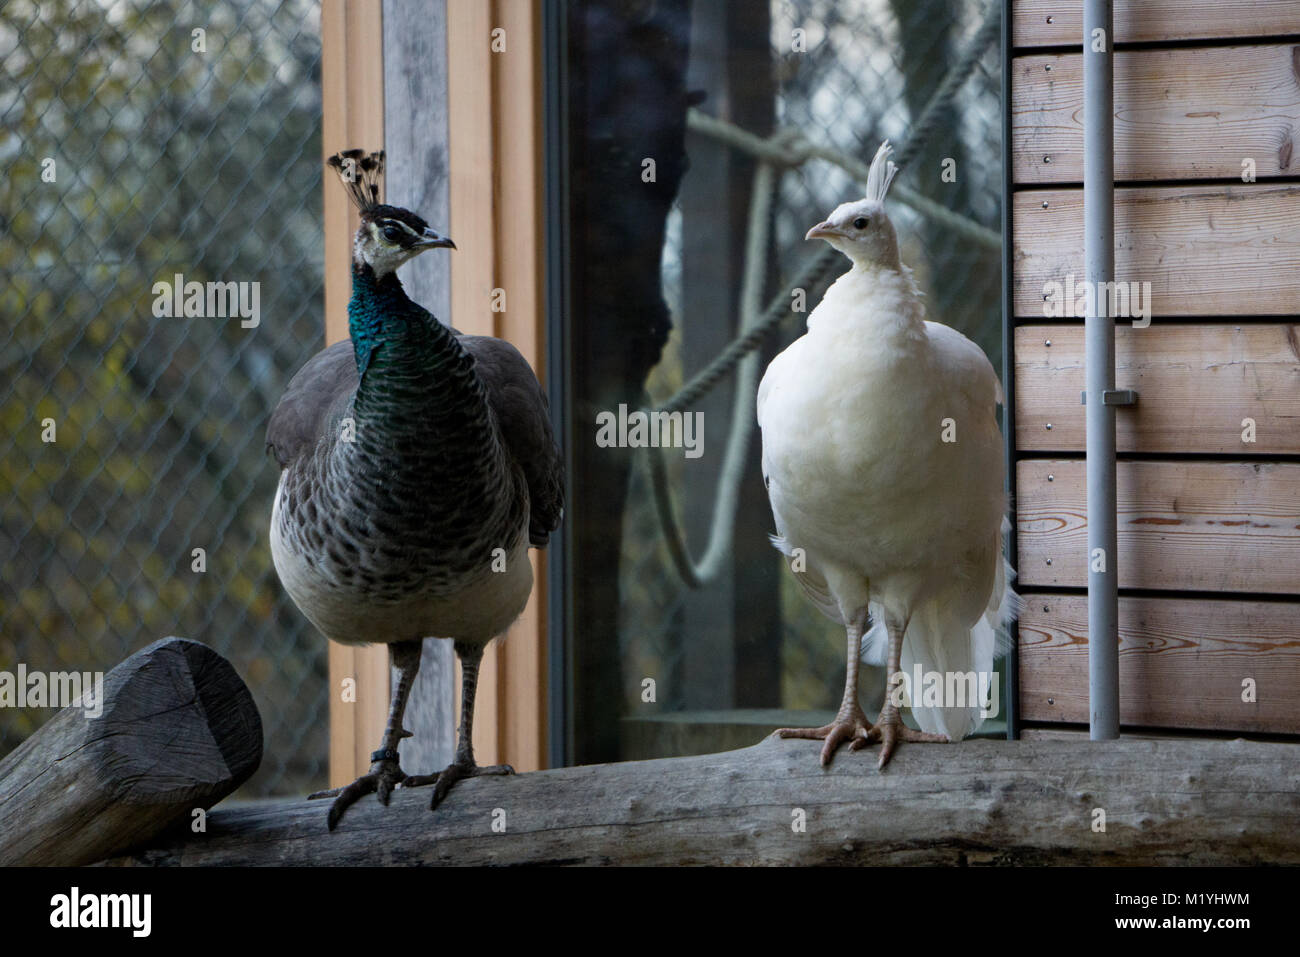 White and regular peafowls side by side - Stock Image